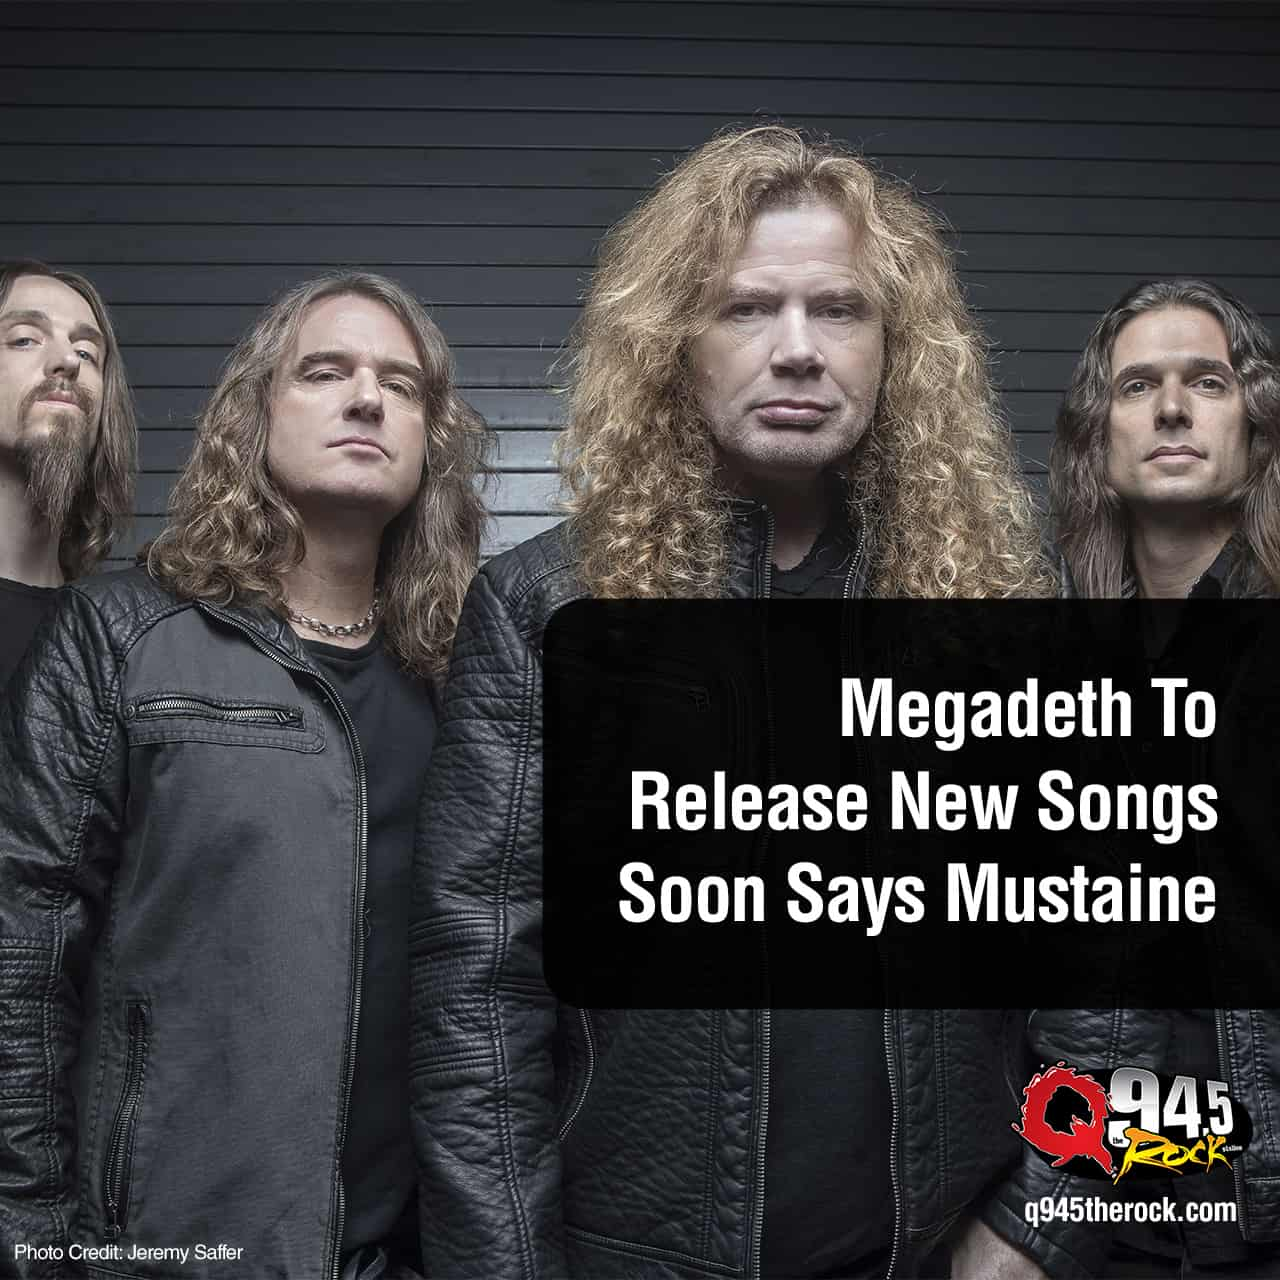 Megadeth To Release New Songs Soon Says Mustaine